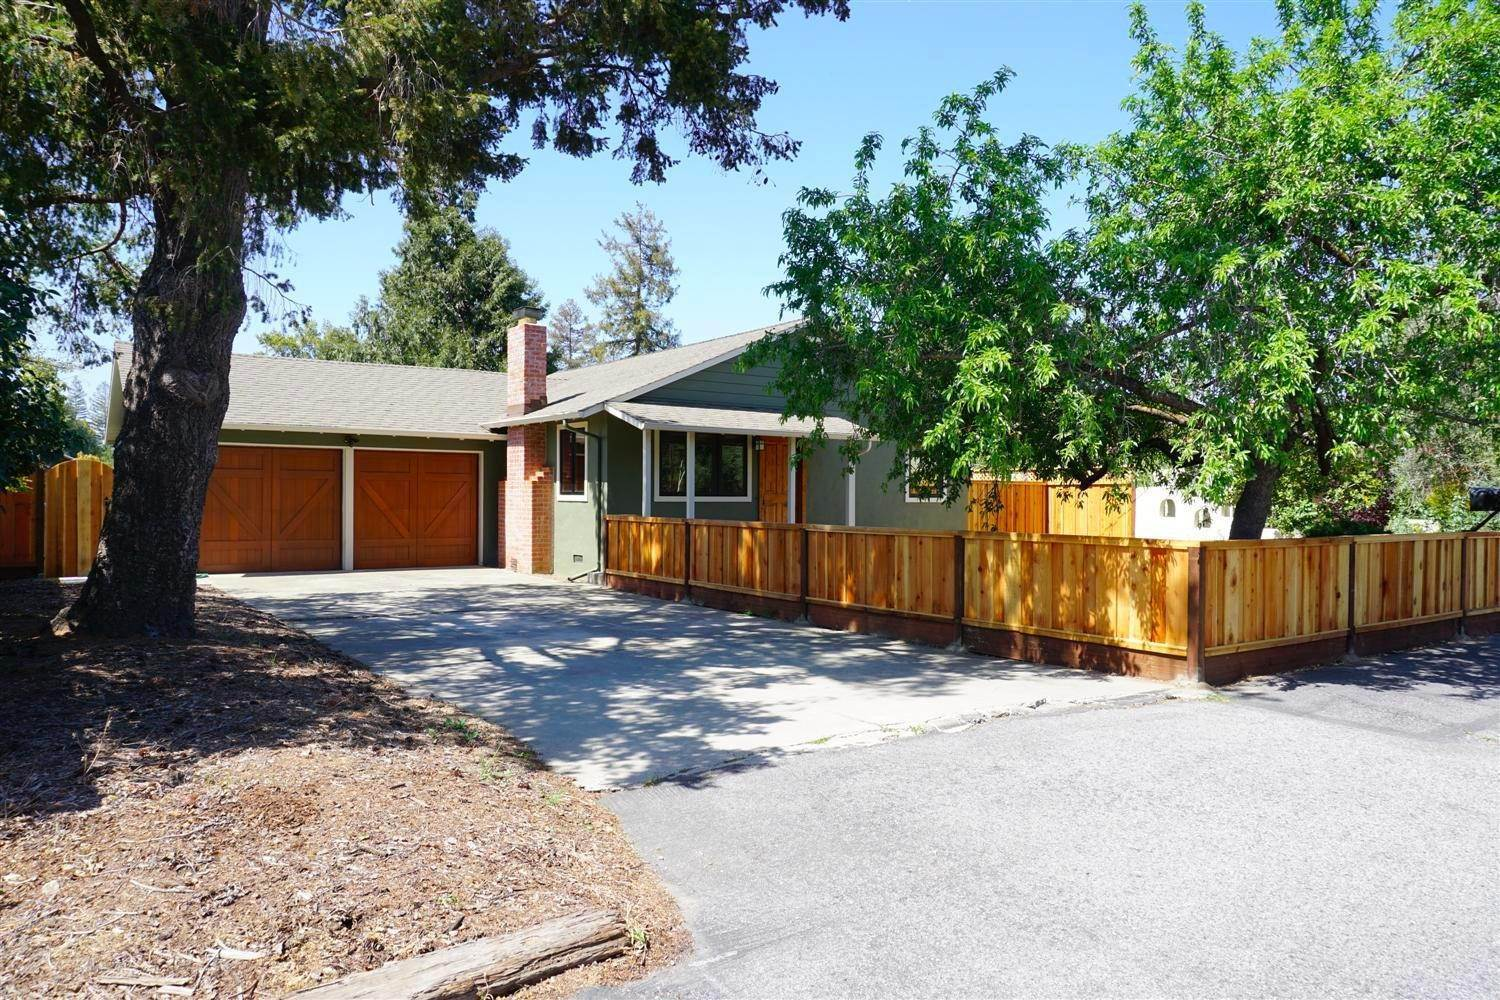 Single Family Homes for Active at 14335 Capri Drive Los Gatos, California 95032 United States